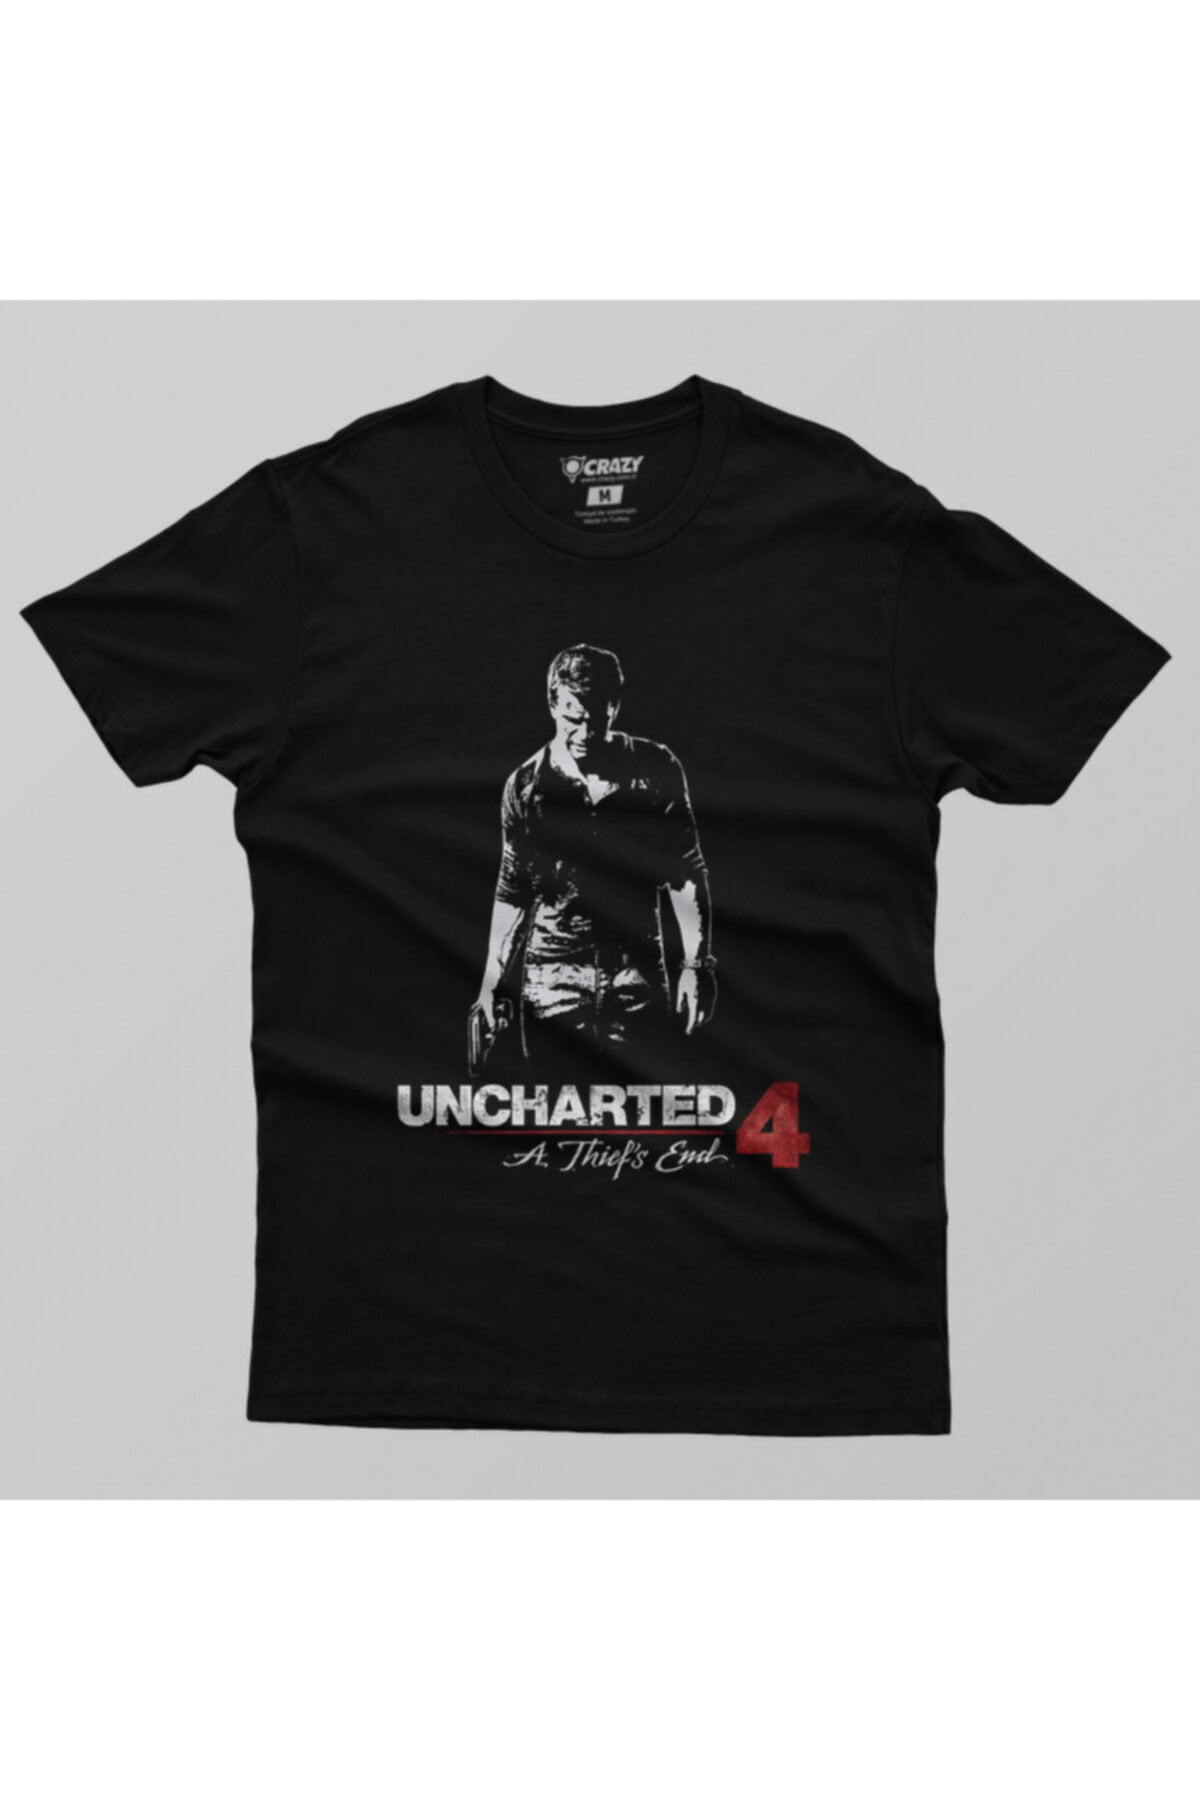 Crazy Uncharted 4 Thief Shadow Erkek Tişört 2